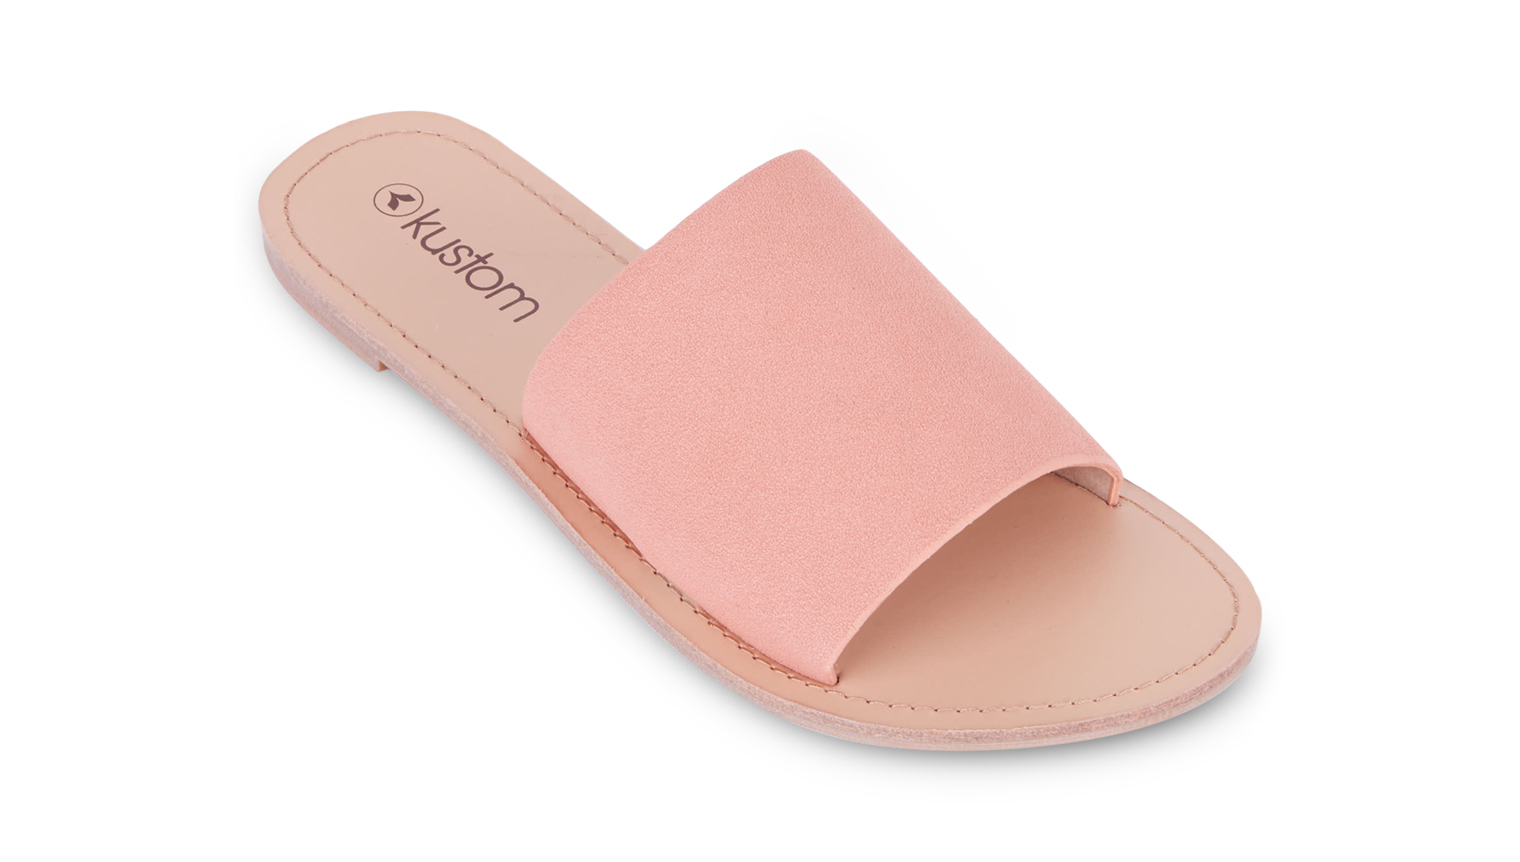 KUSTOM THONGS & SANDALS BYRON SANDAL / SUN PEACH